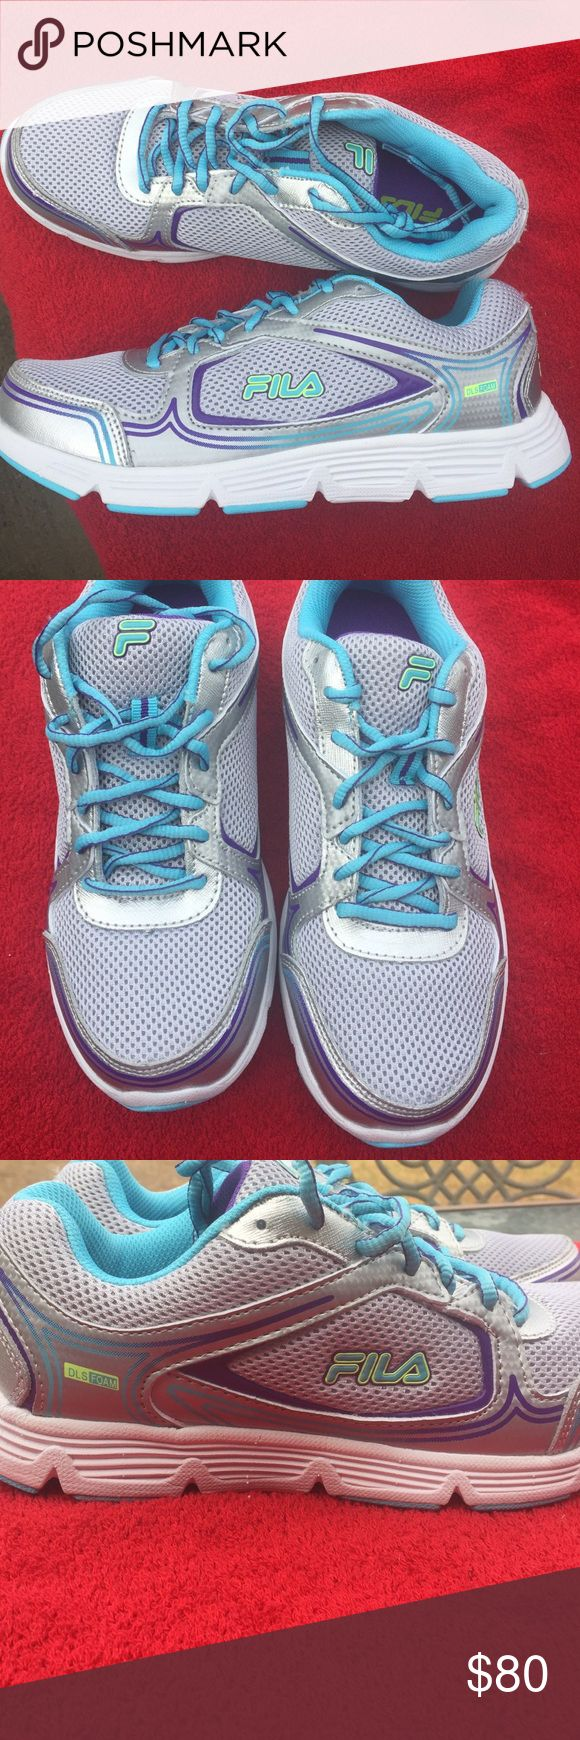 New Fila Running Shoes!! New Fila Running Shoes. Size 9. Very cute. Please check out my closet, as I am listing new items daily. Fila Shoes Sneakers